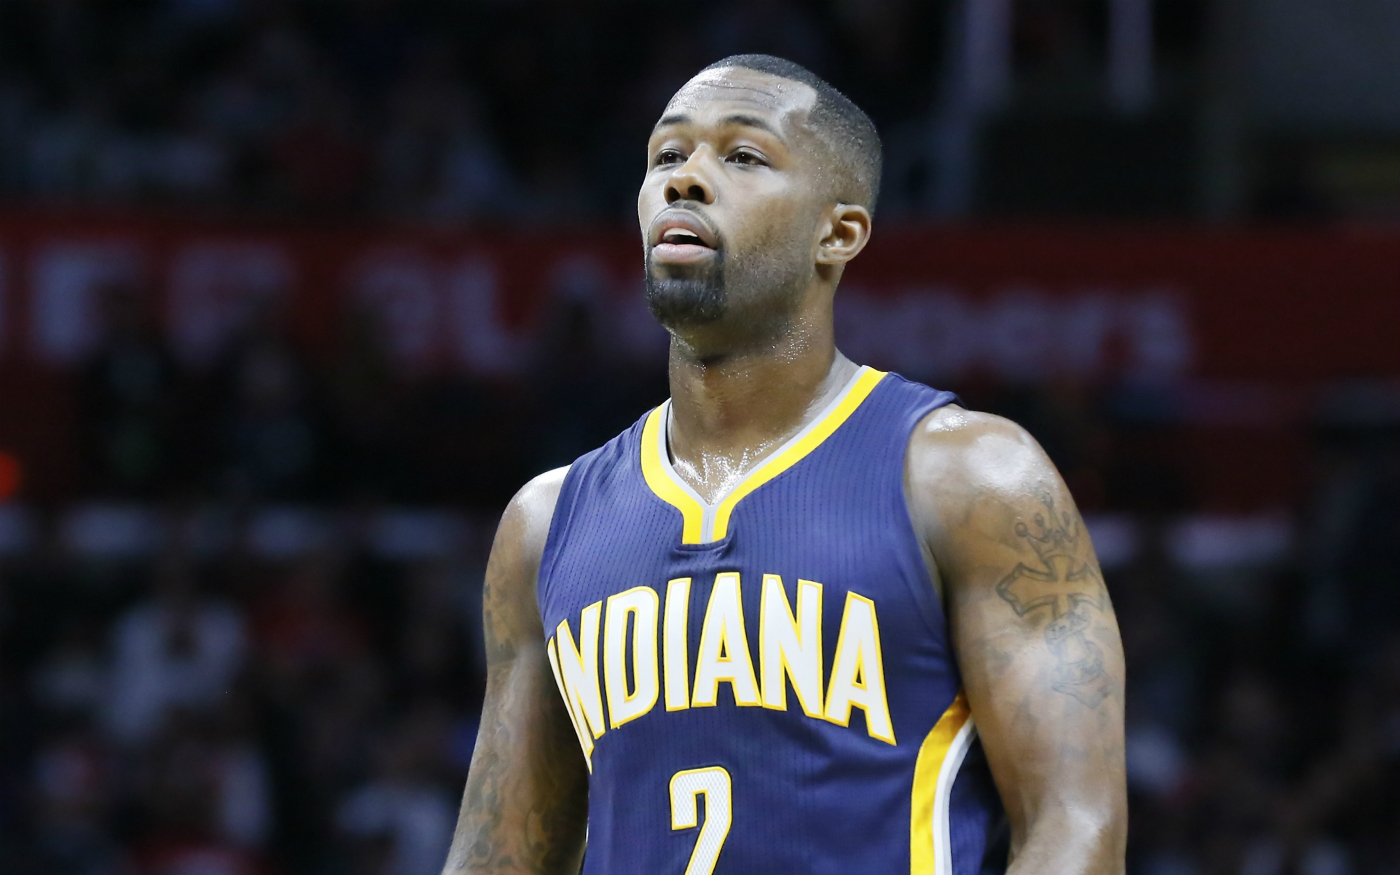 Les Lakers se penchent sur le cas Rodney Stuckey